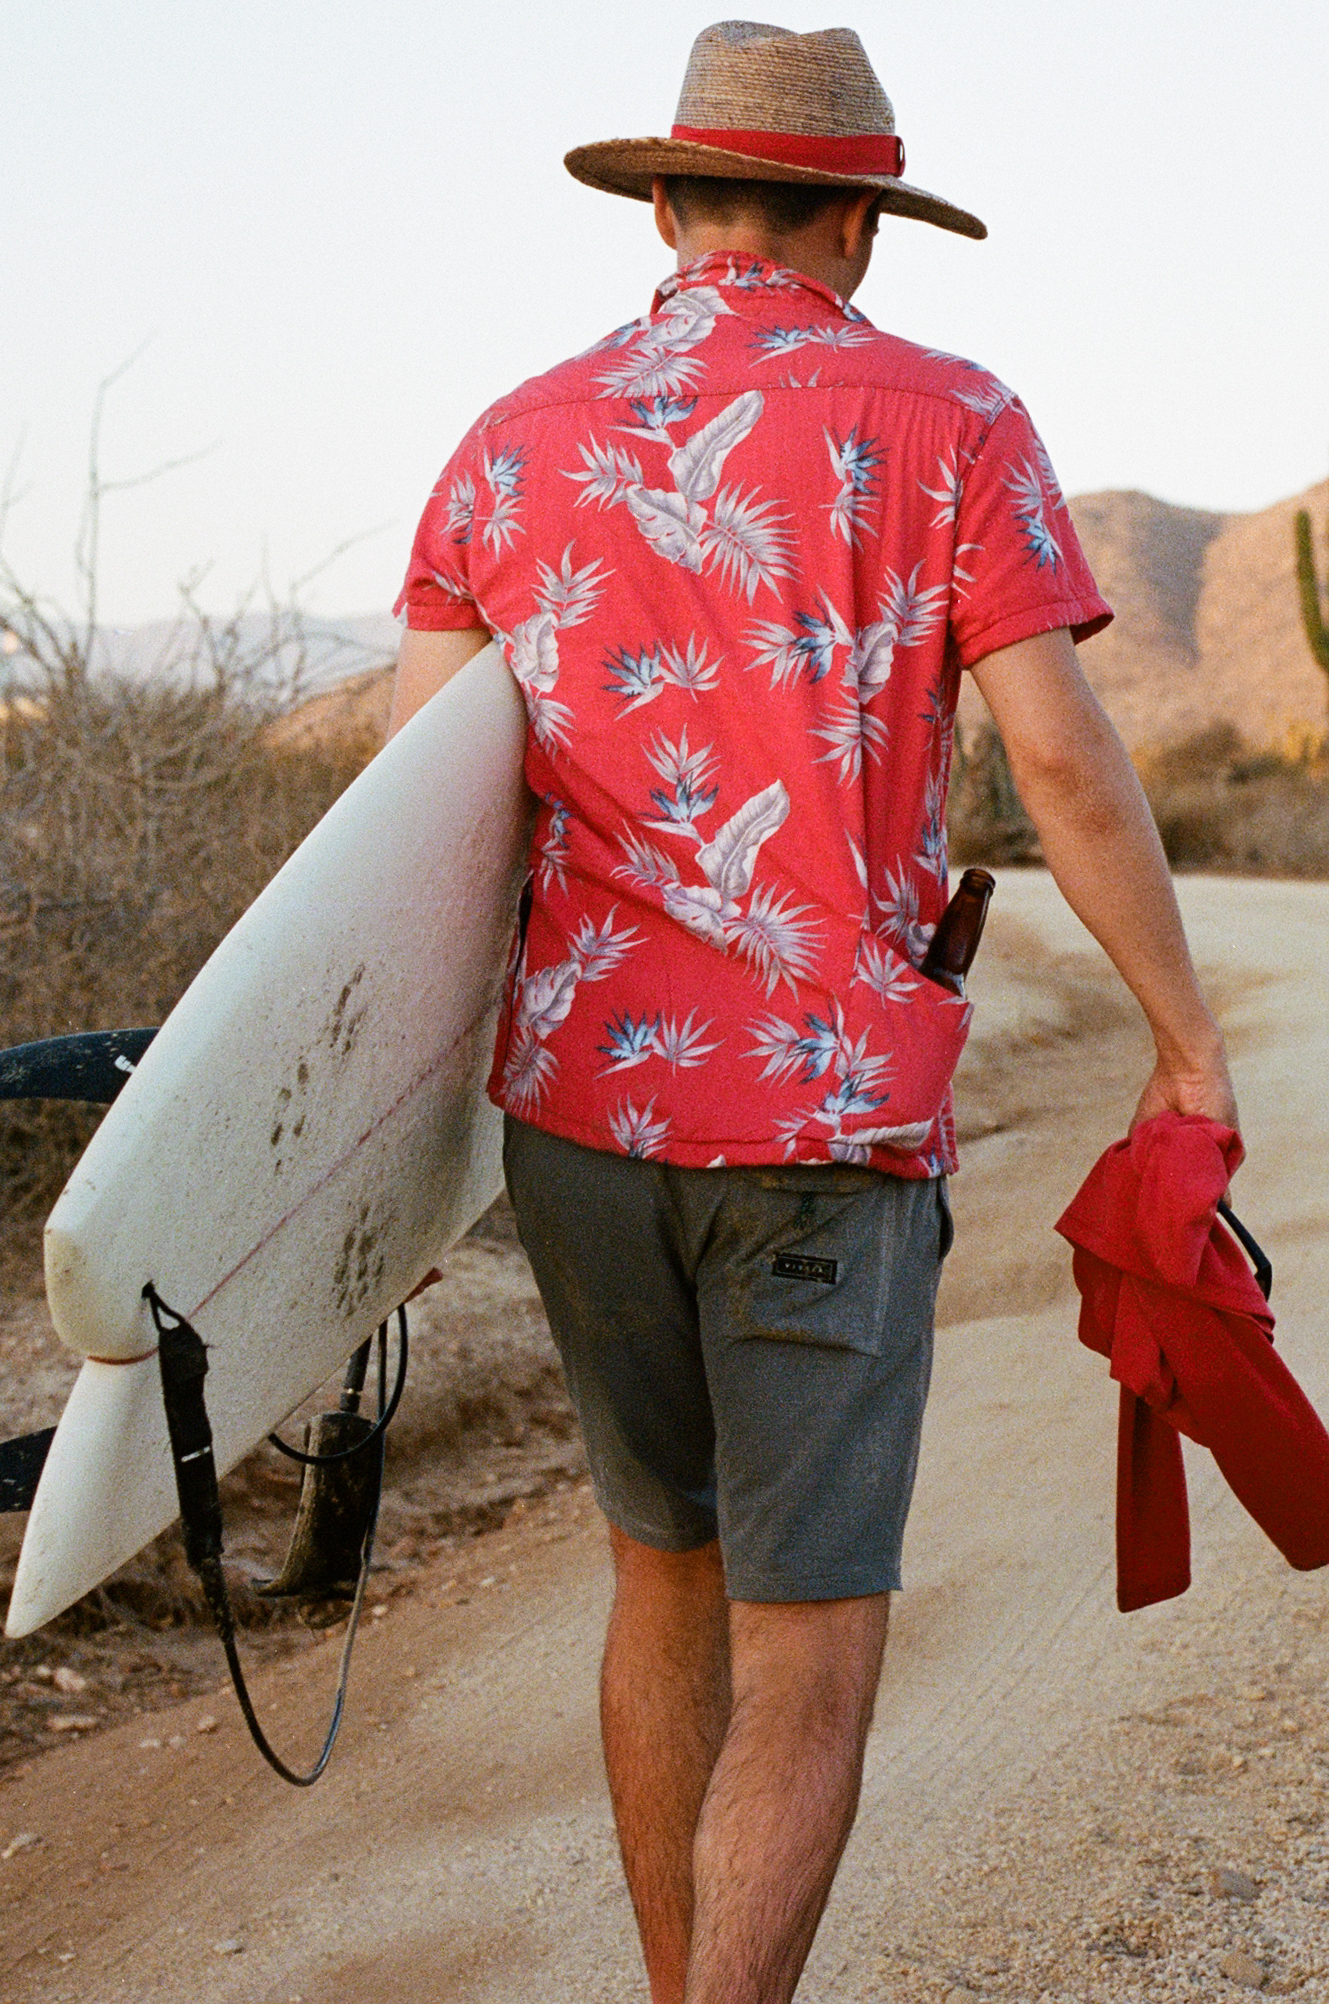 Photograph of Nick Messina surfing in Baja Mexico by photographer Jon Moore, Creative Director at The Beans and Rice